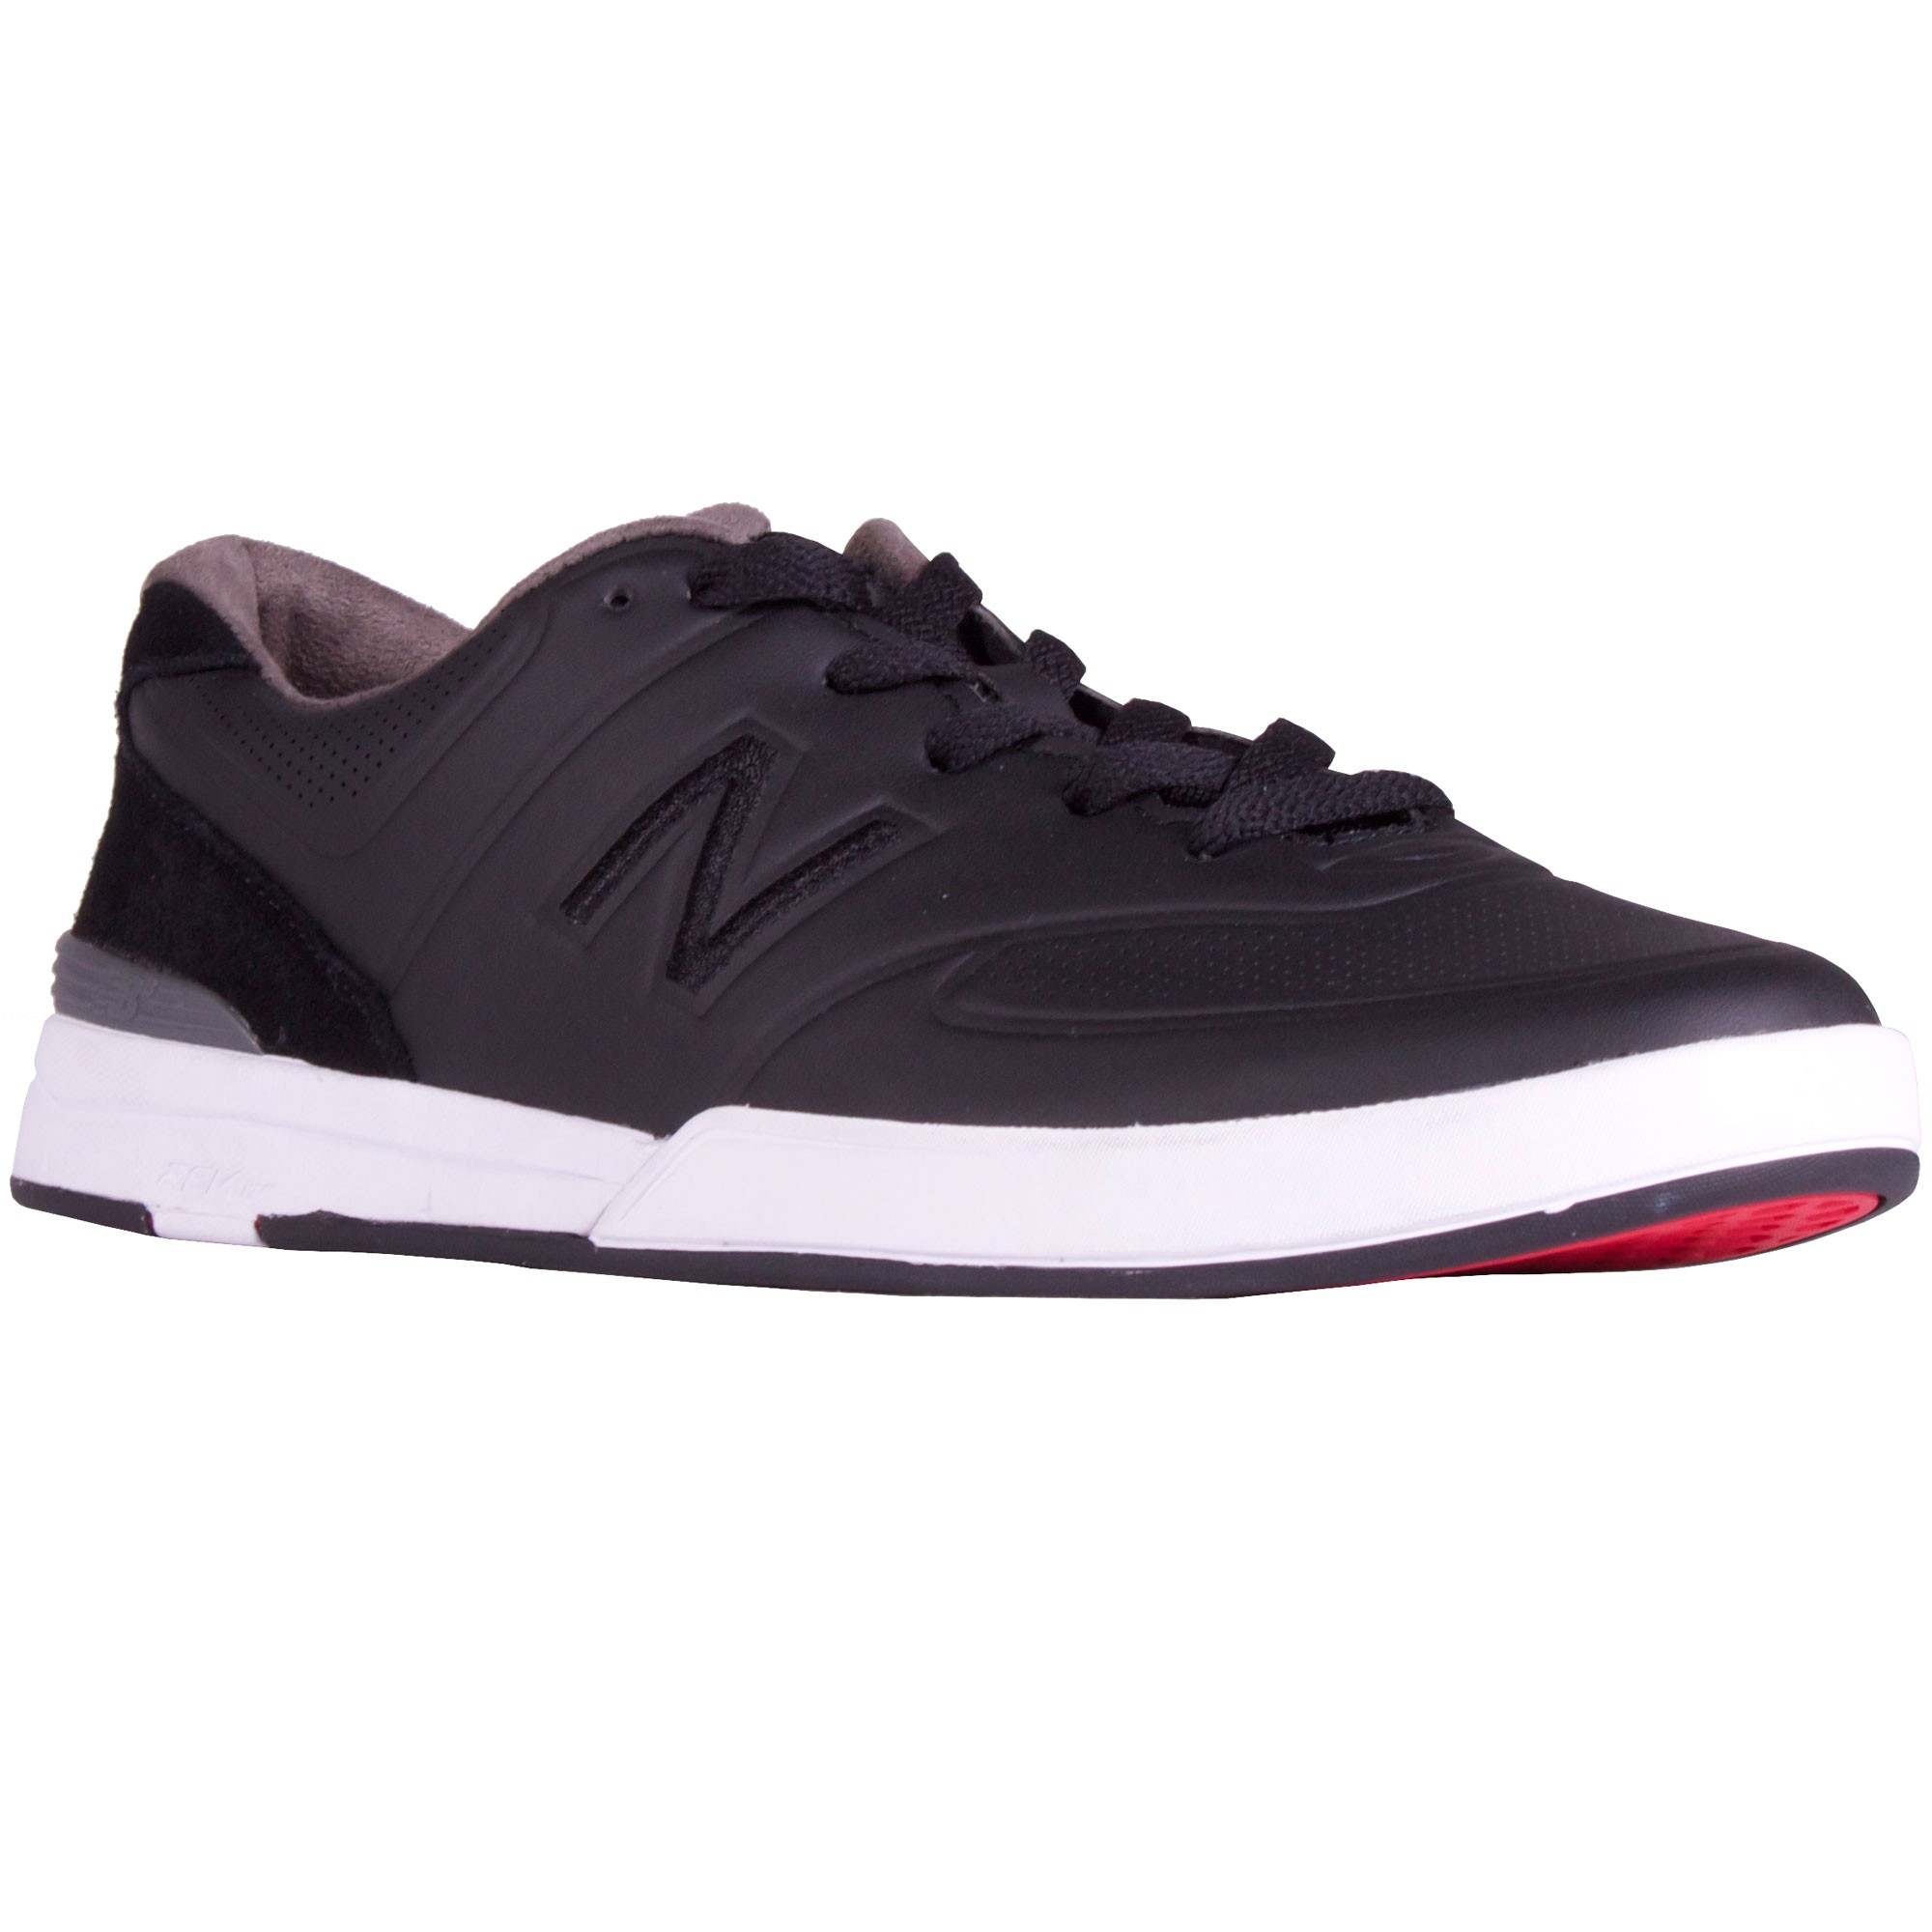 New Balance Logan 637 Shoes - Black / Black